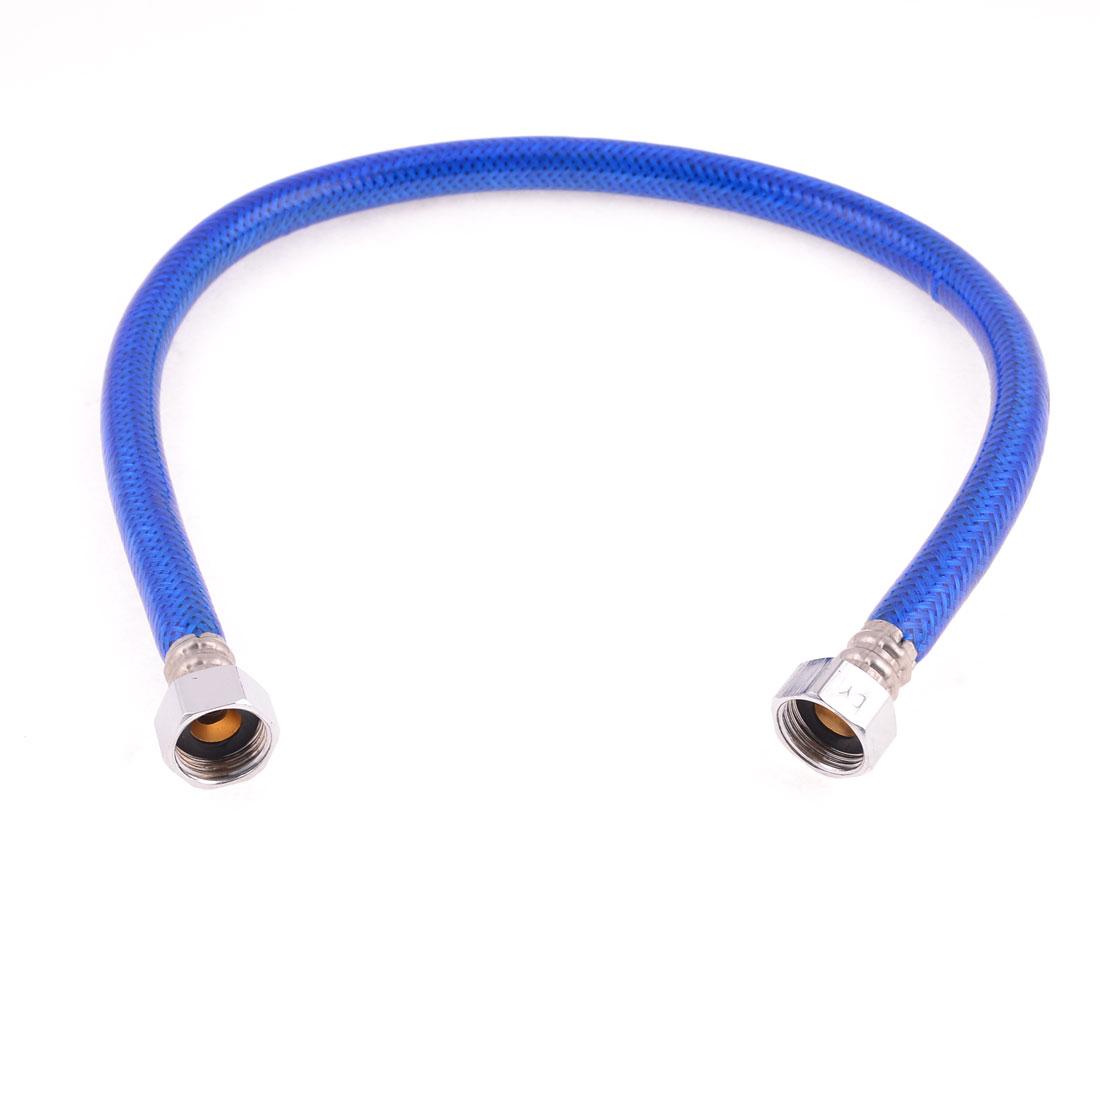 "23.6"" 19mm Threaded Flexible Shower Hose Water Heater Connector Pipe Blue"